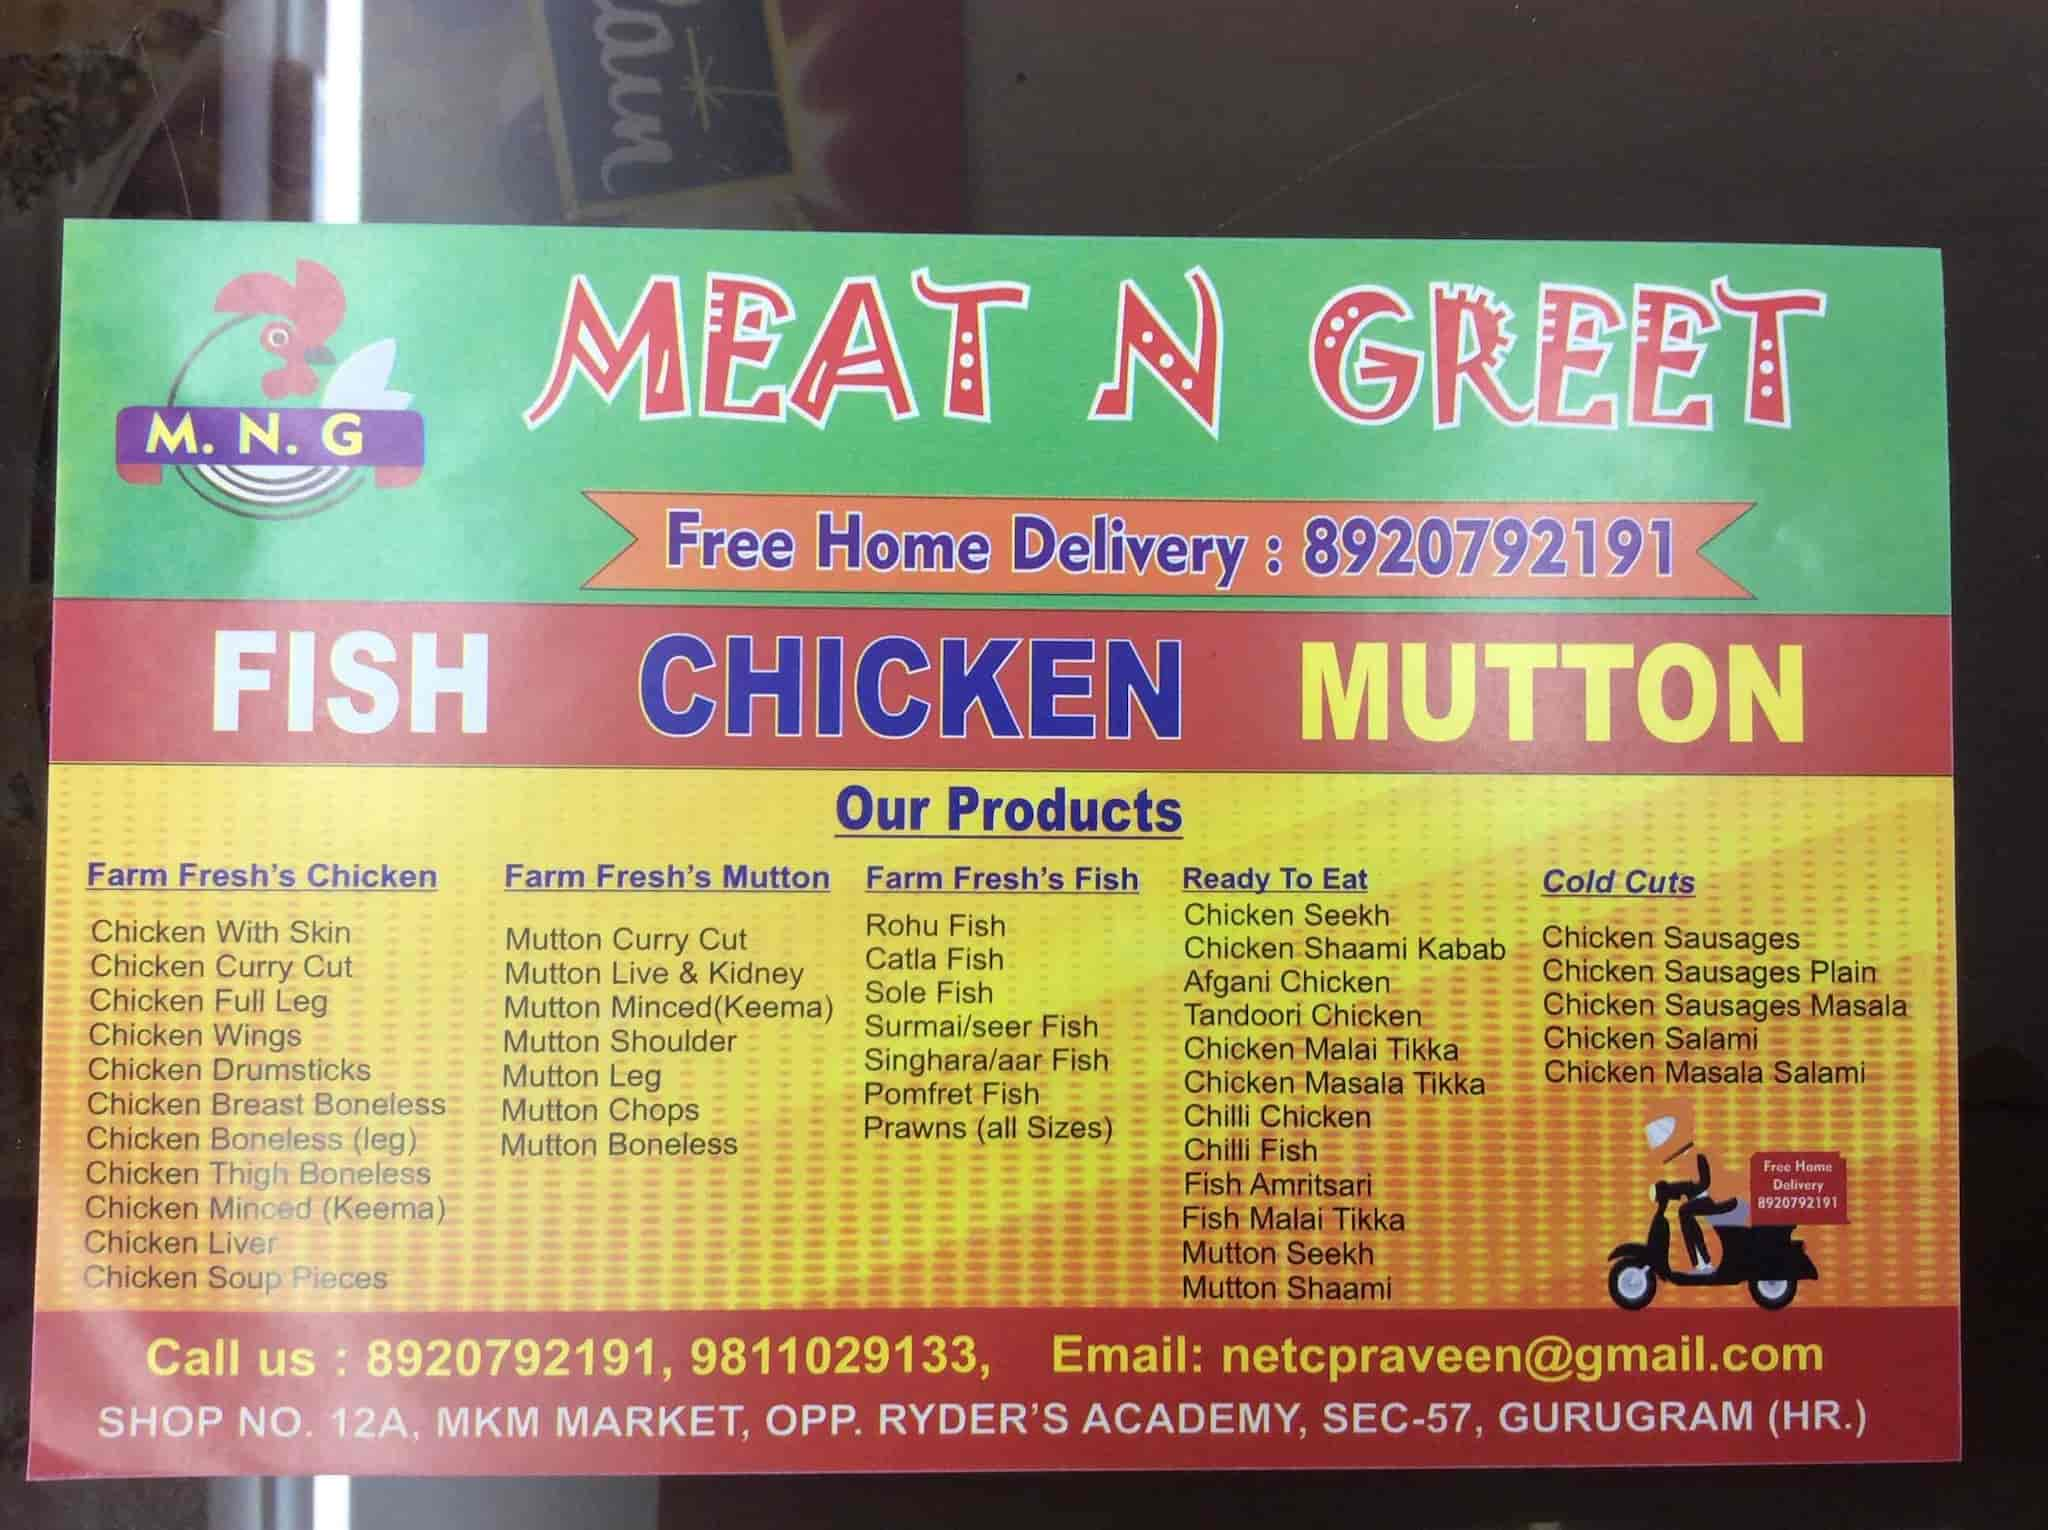 Meat n greet photos sector 57 gurgaon pictures images gallery meat n greet photos sector 57 delhi chicken retailers m4hsunfo